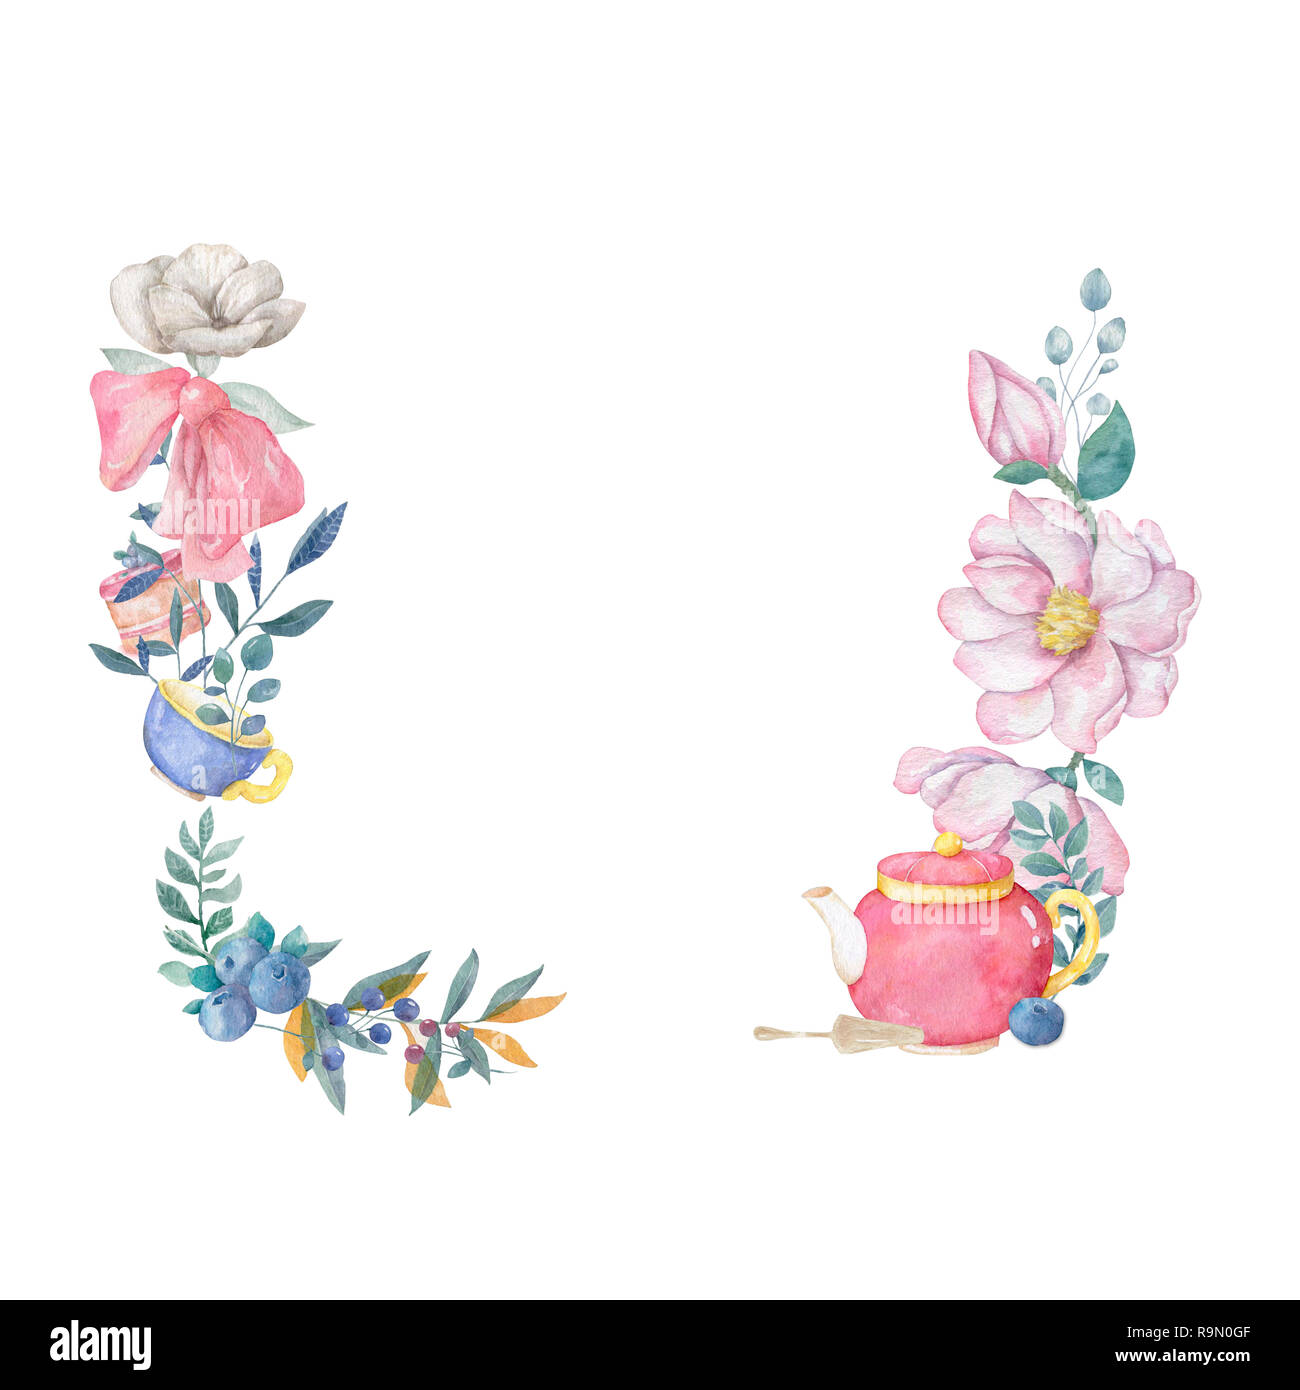 Watercolor pink flowers and leaves wreath Hand drawn illustration